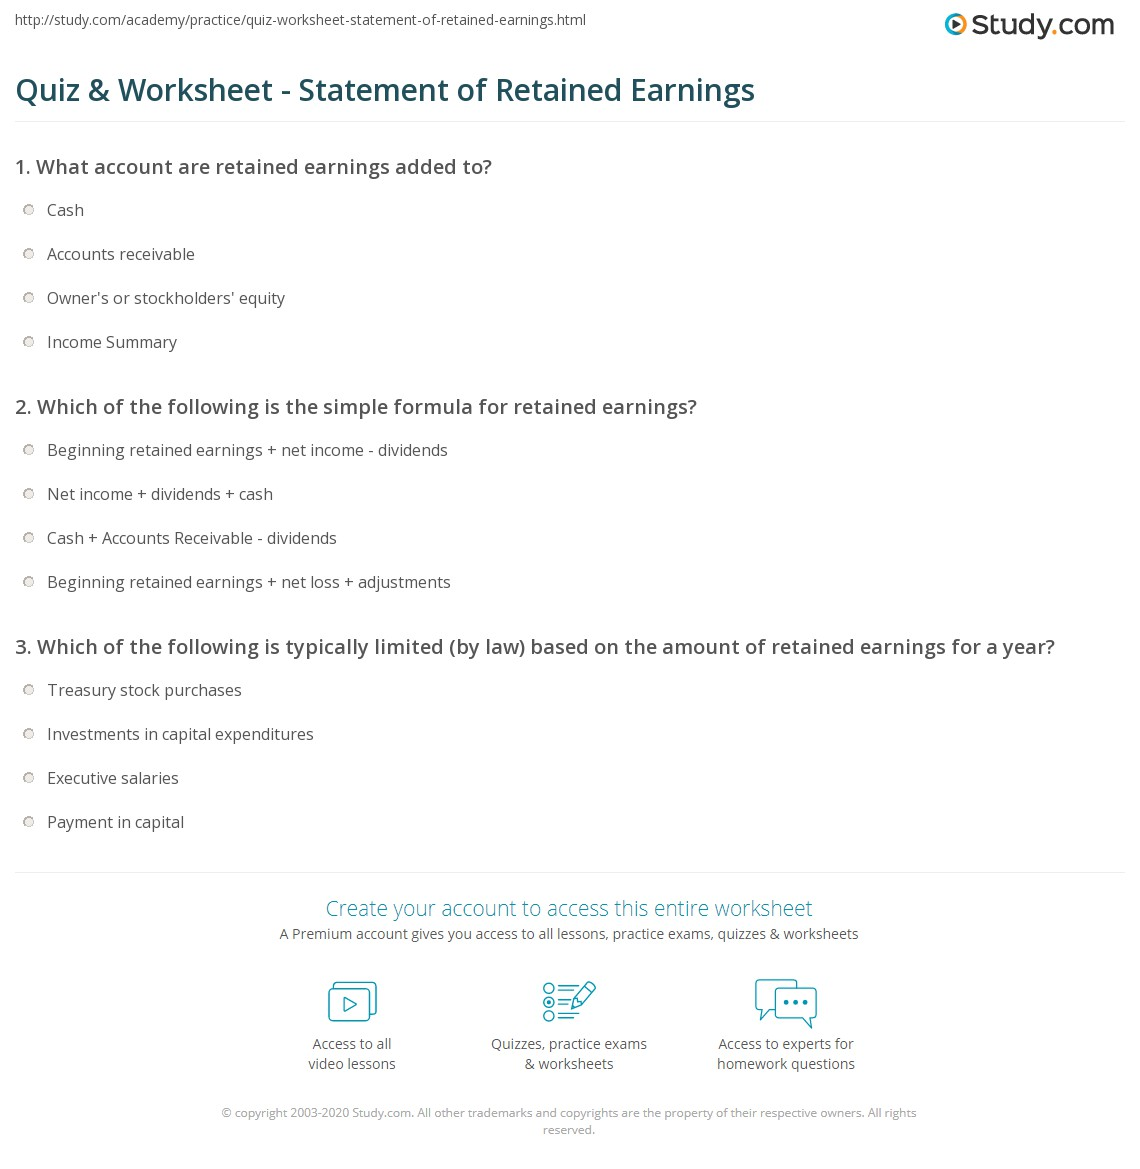 Quiz Worksheet Statement of Retained Earnings – Statement of Retained Earnings Sample